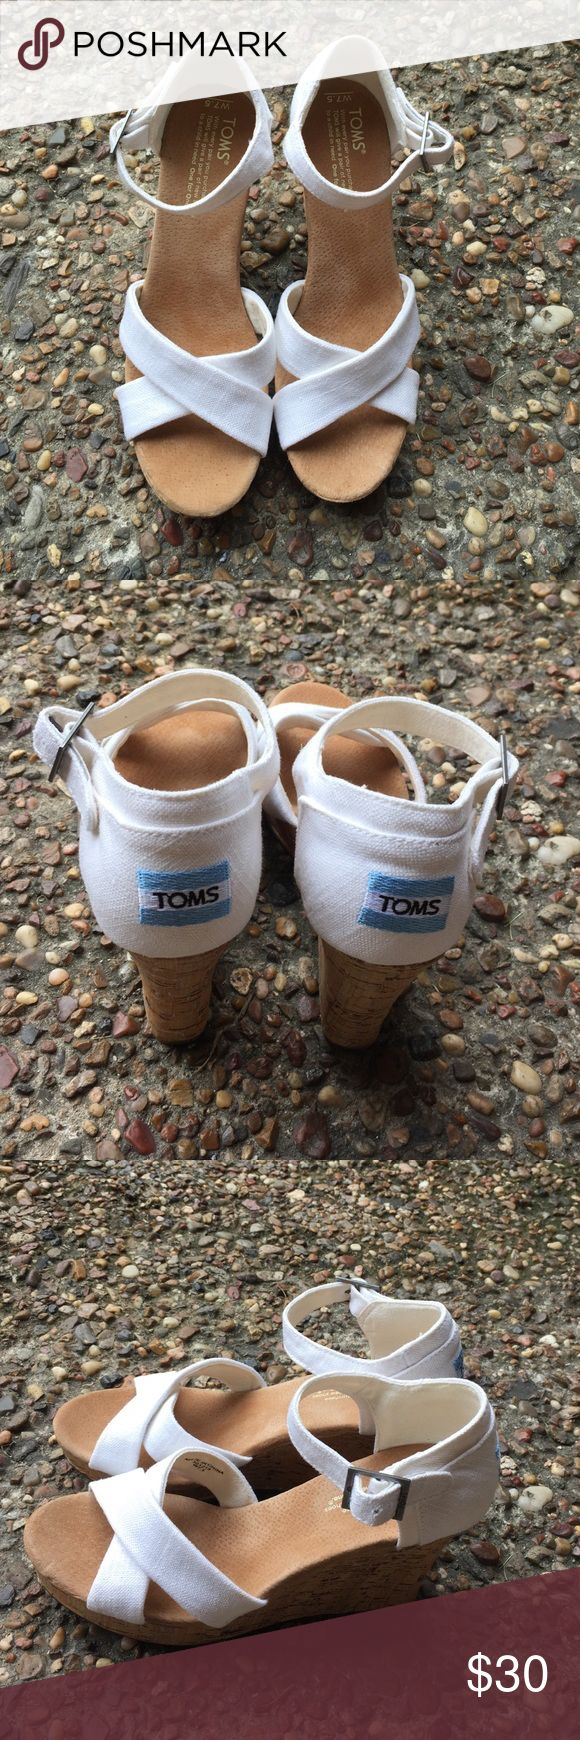 Toms wedges Toms strappy wedges sandals white good condition  used two times only super clean TOMS Shoes Wedges